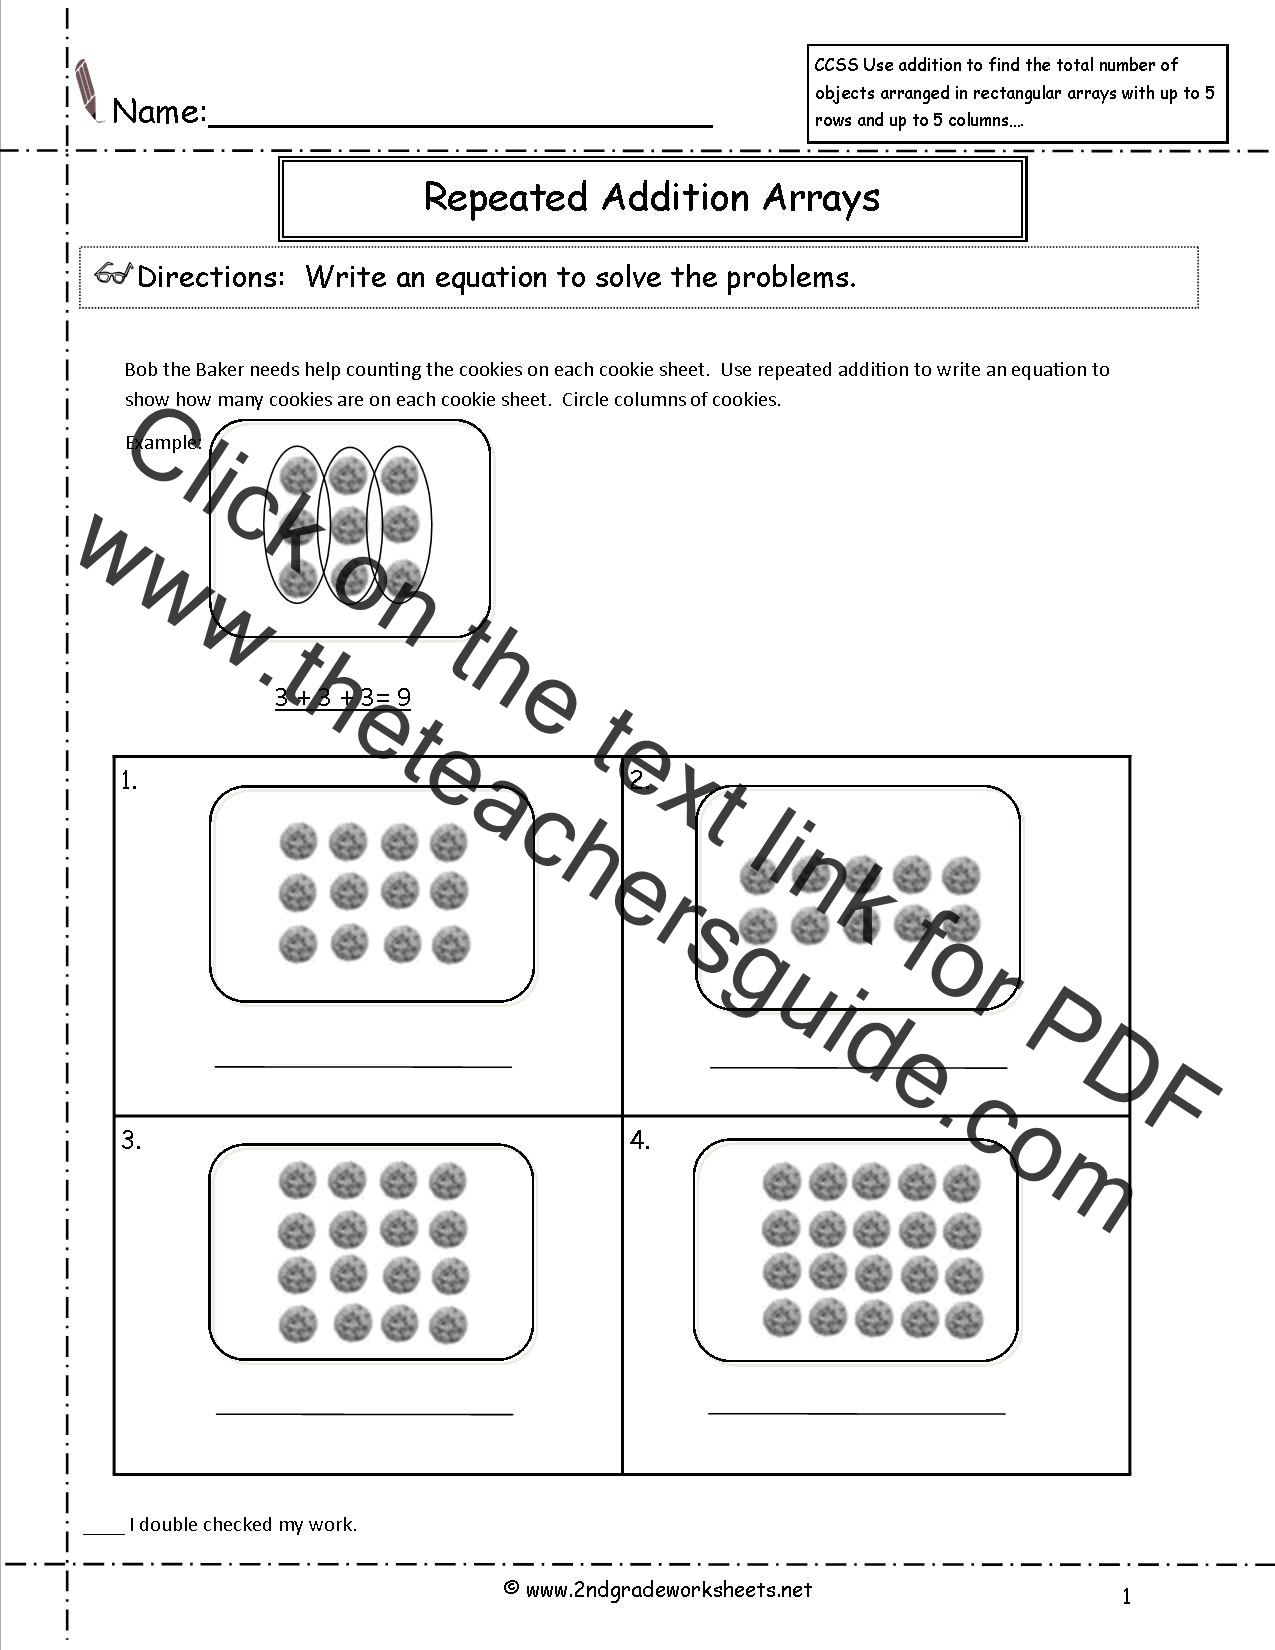 Uncategorized Common Core Math Worksheets Grade 5 2nd grade math common core state standards worksheets ccss 2 oa 4 worksheets